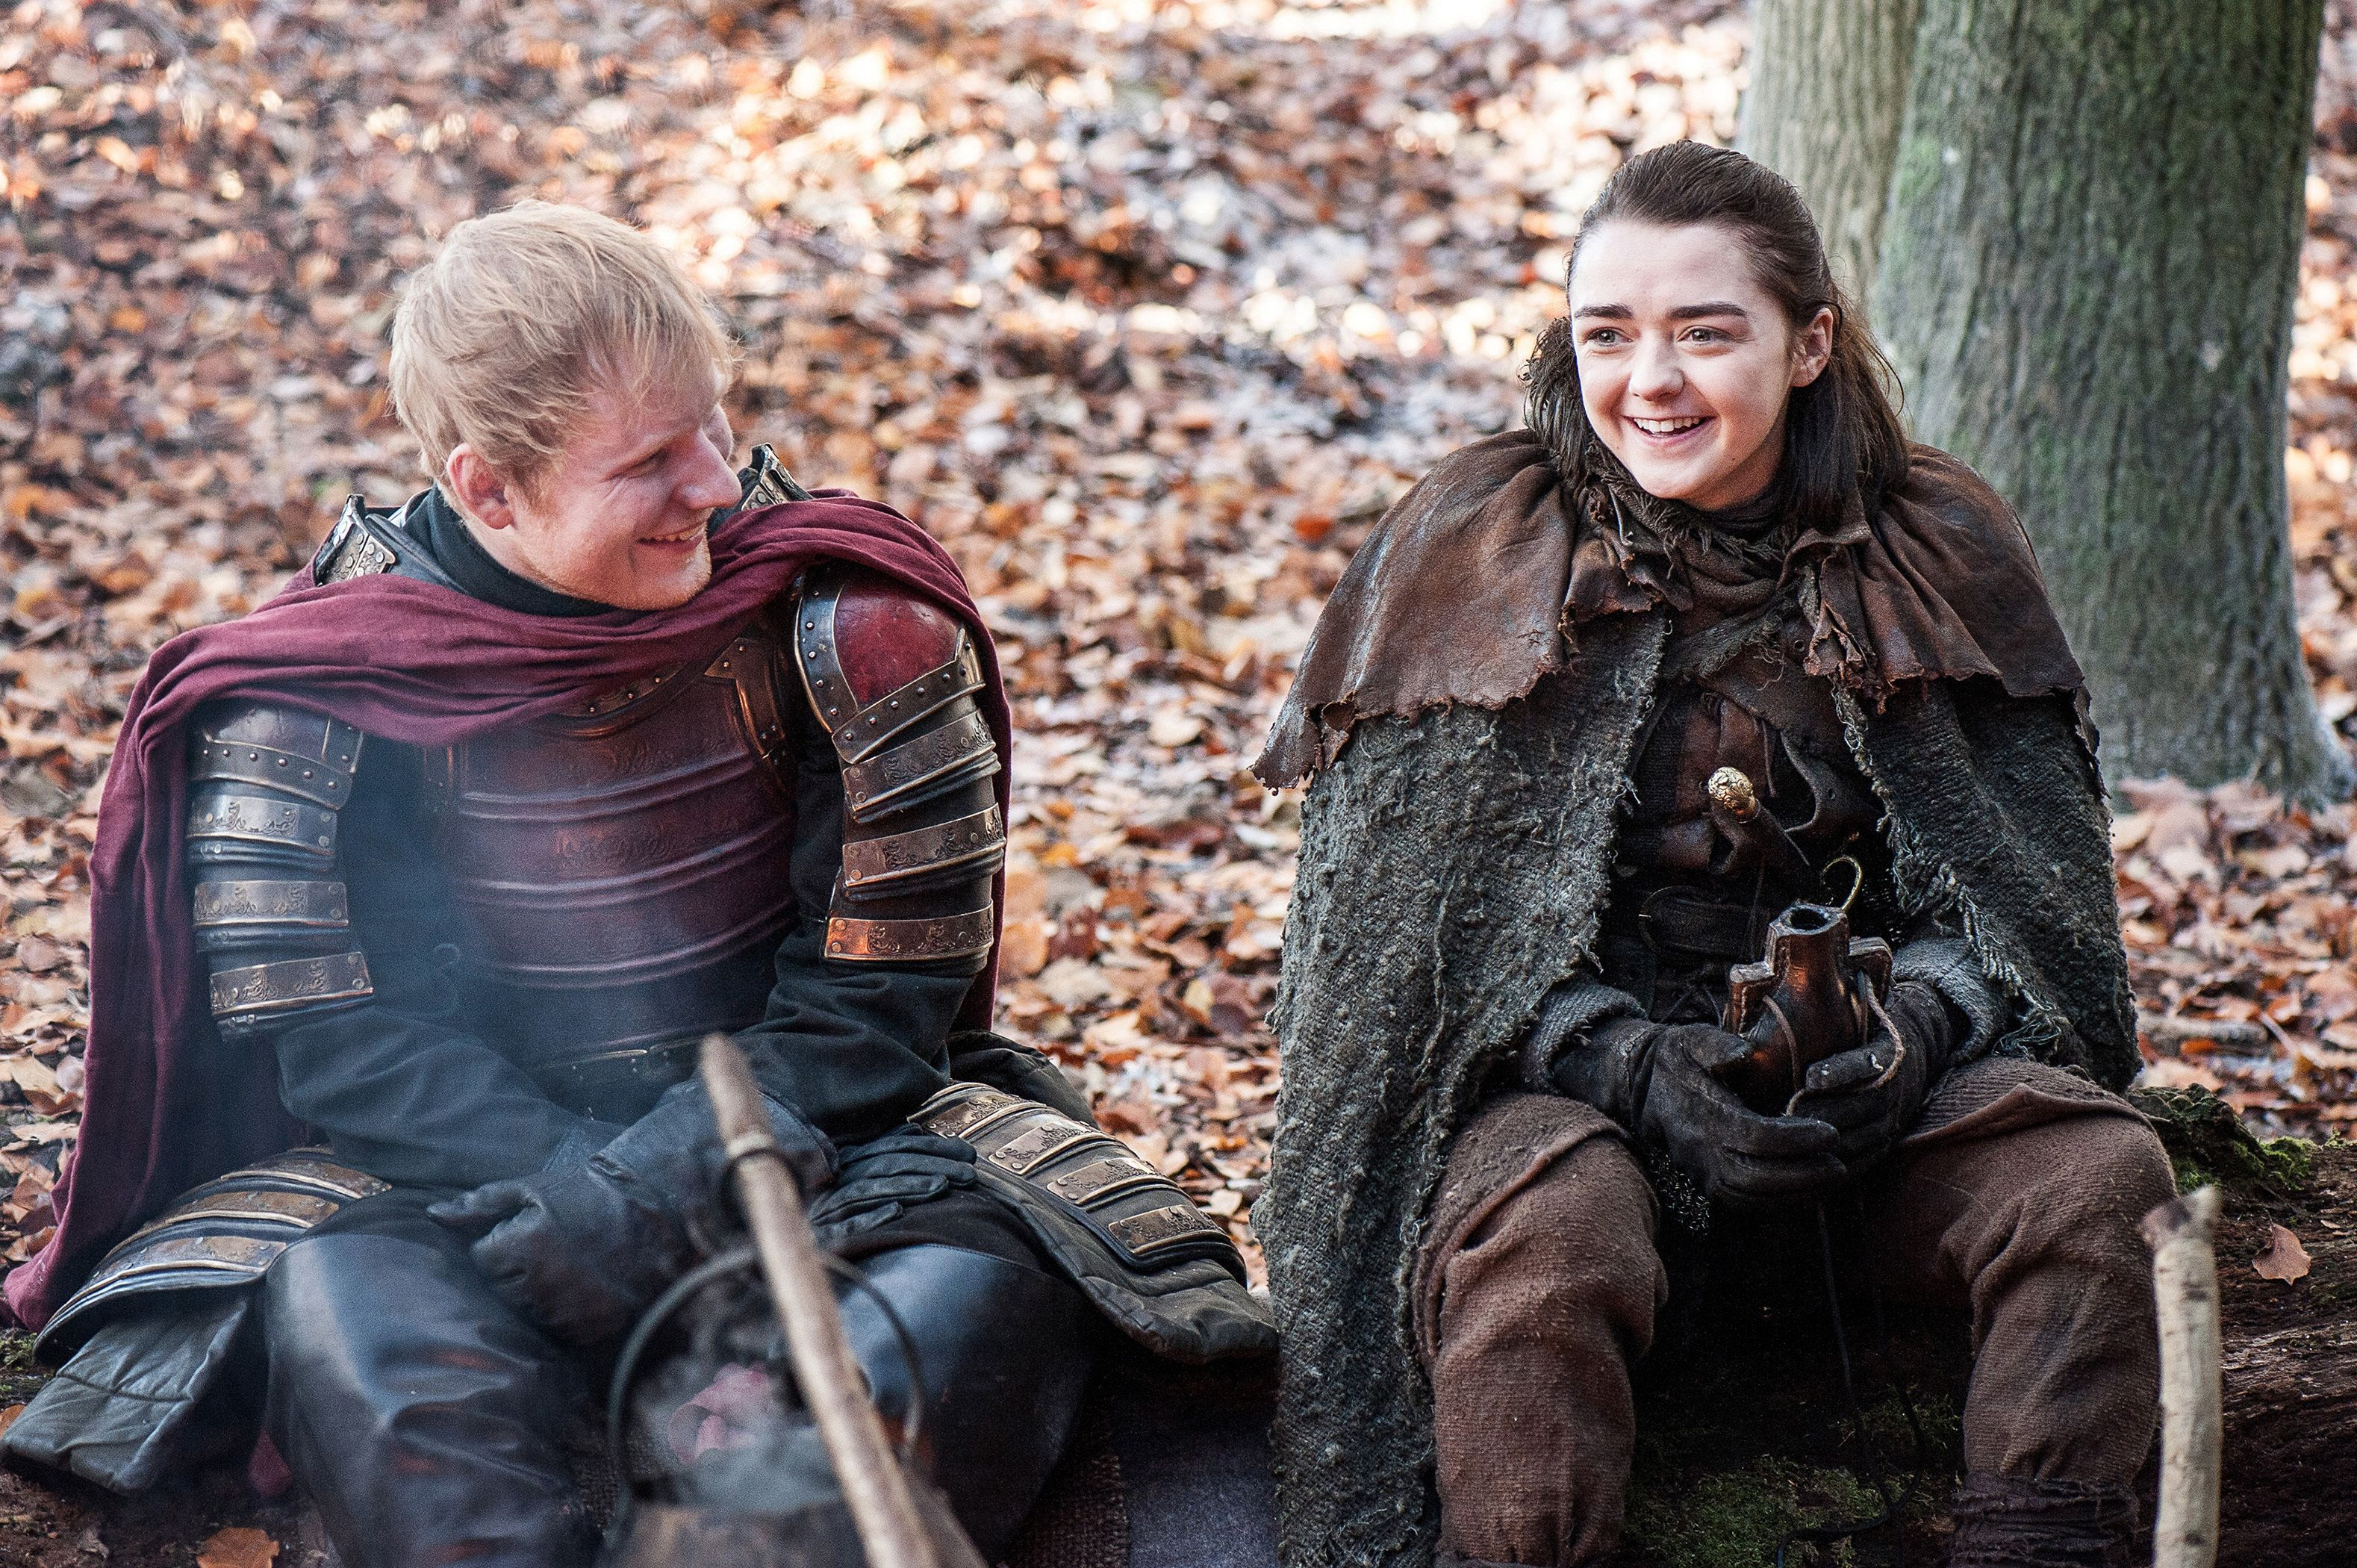 Hodor Hated Game of Thrones' Ed Sheeran Cameo Too